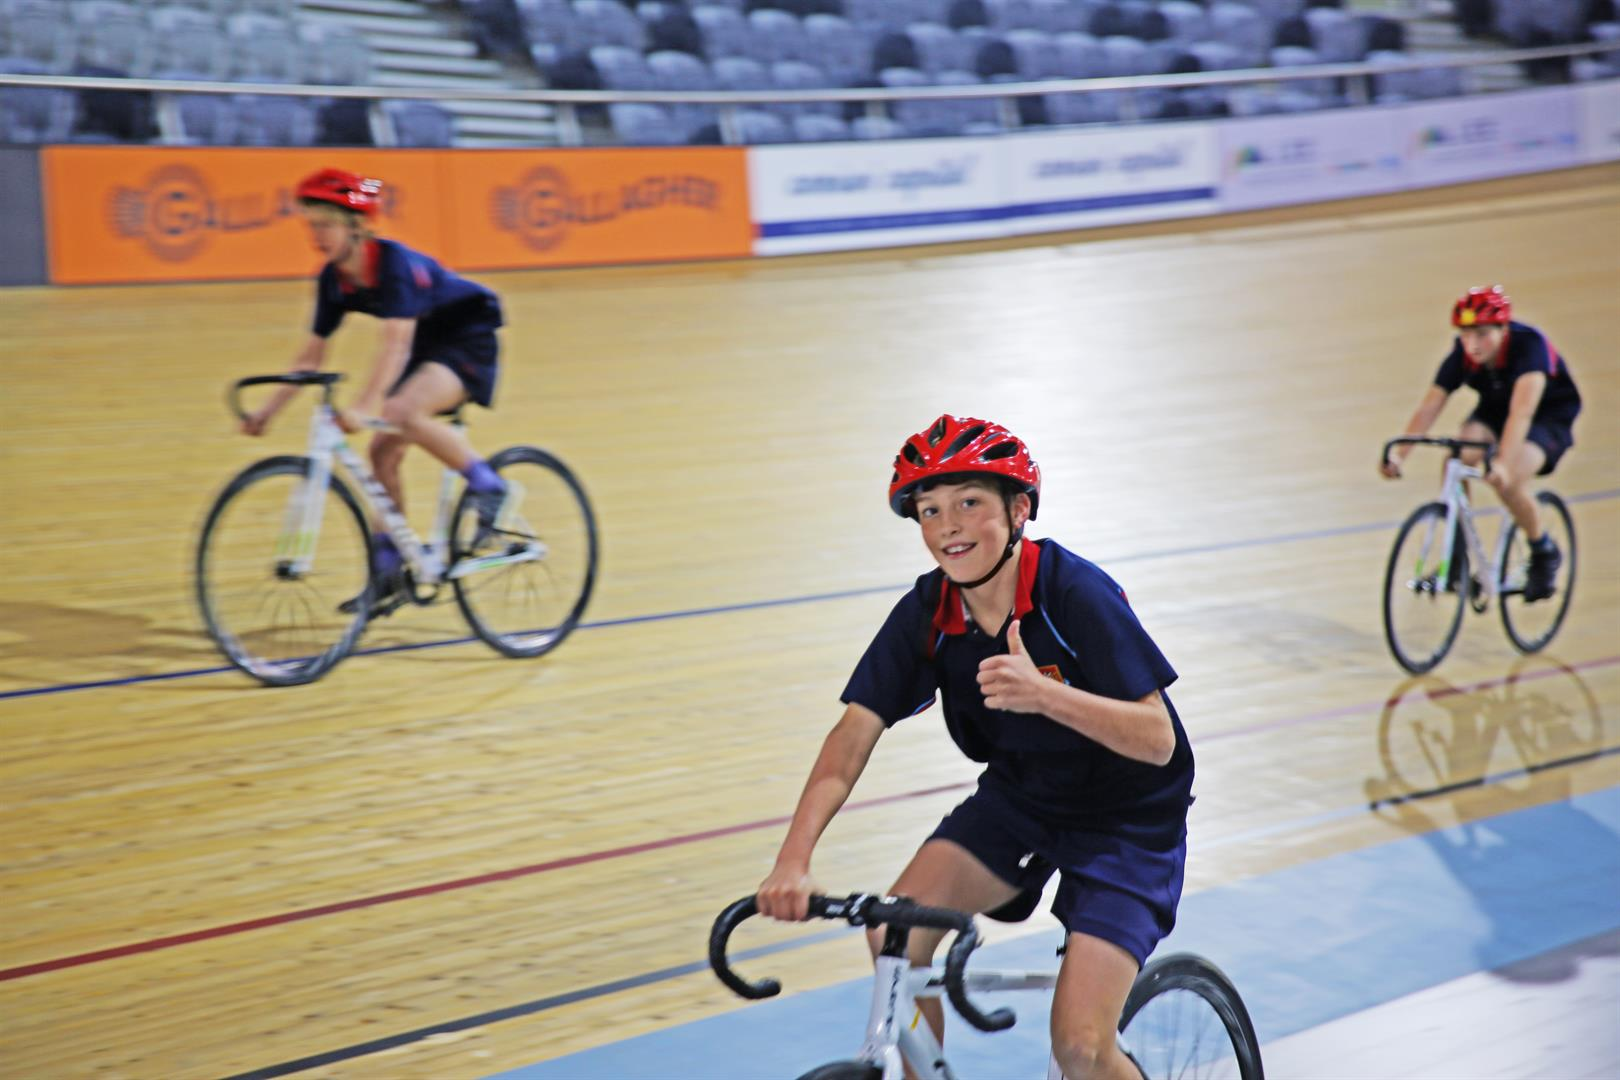 Rowing & Cycling Holiday Programmes | St Peter's News & Events